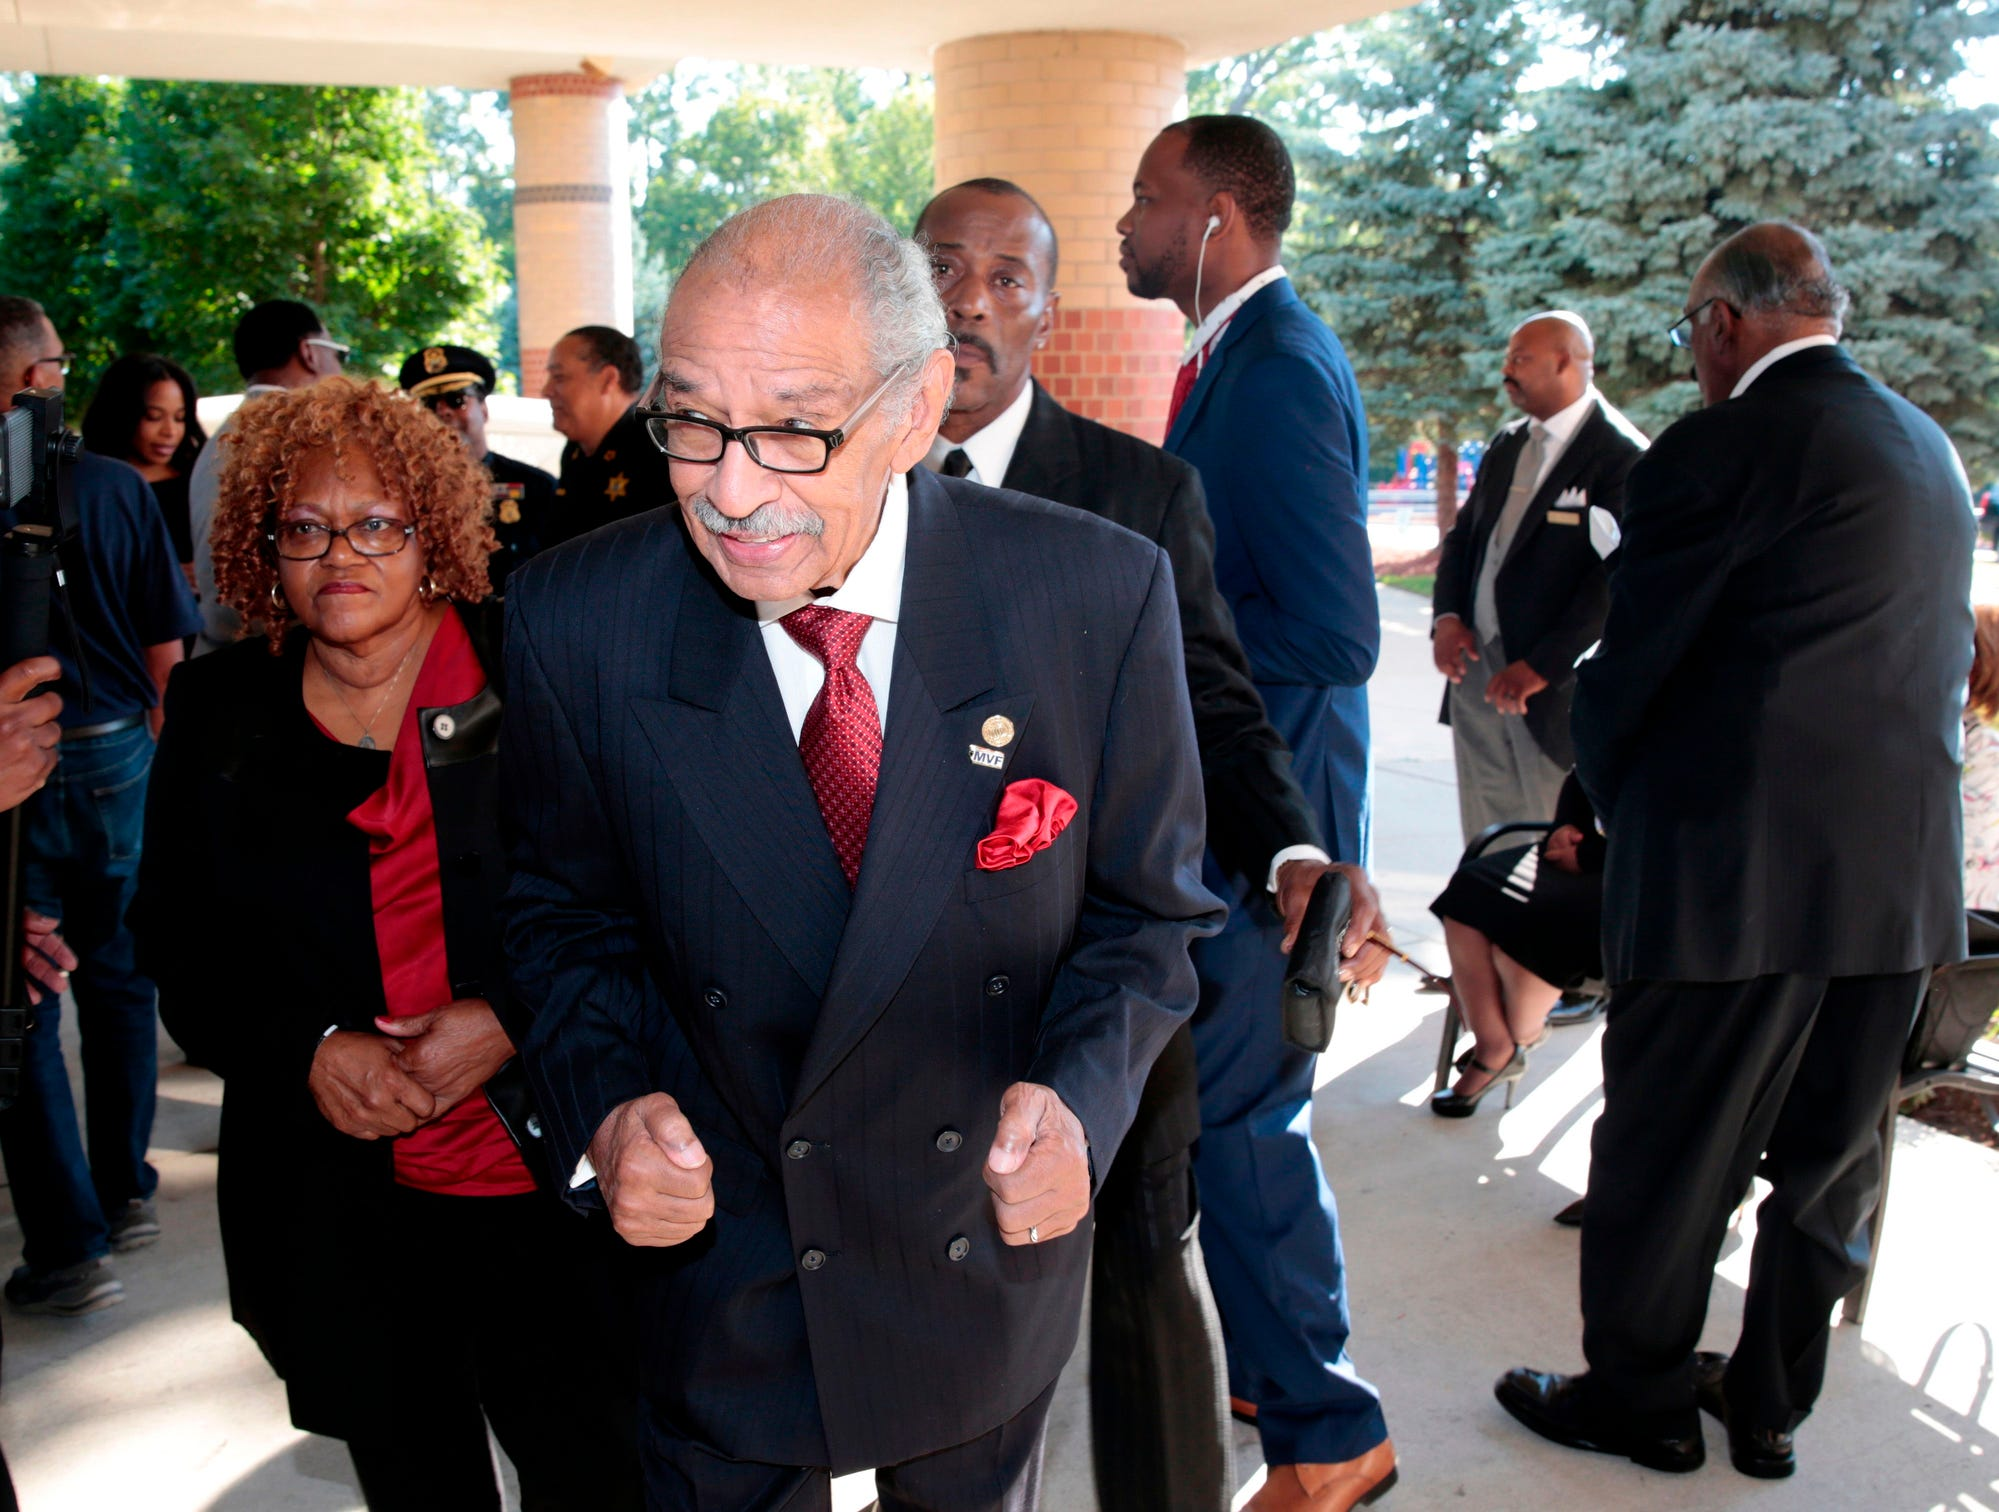 Former US congressman John Conyers arrives for Aretha Franklin's funeral.